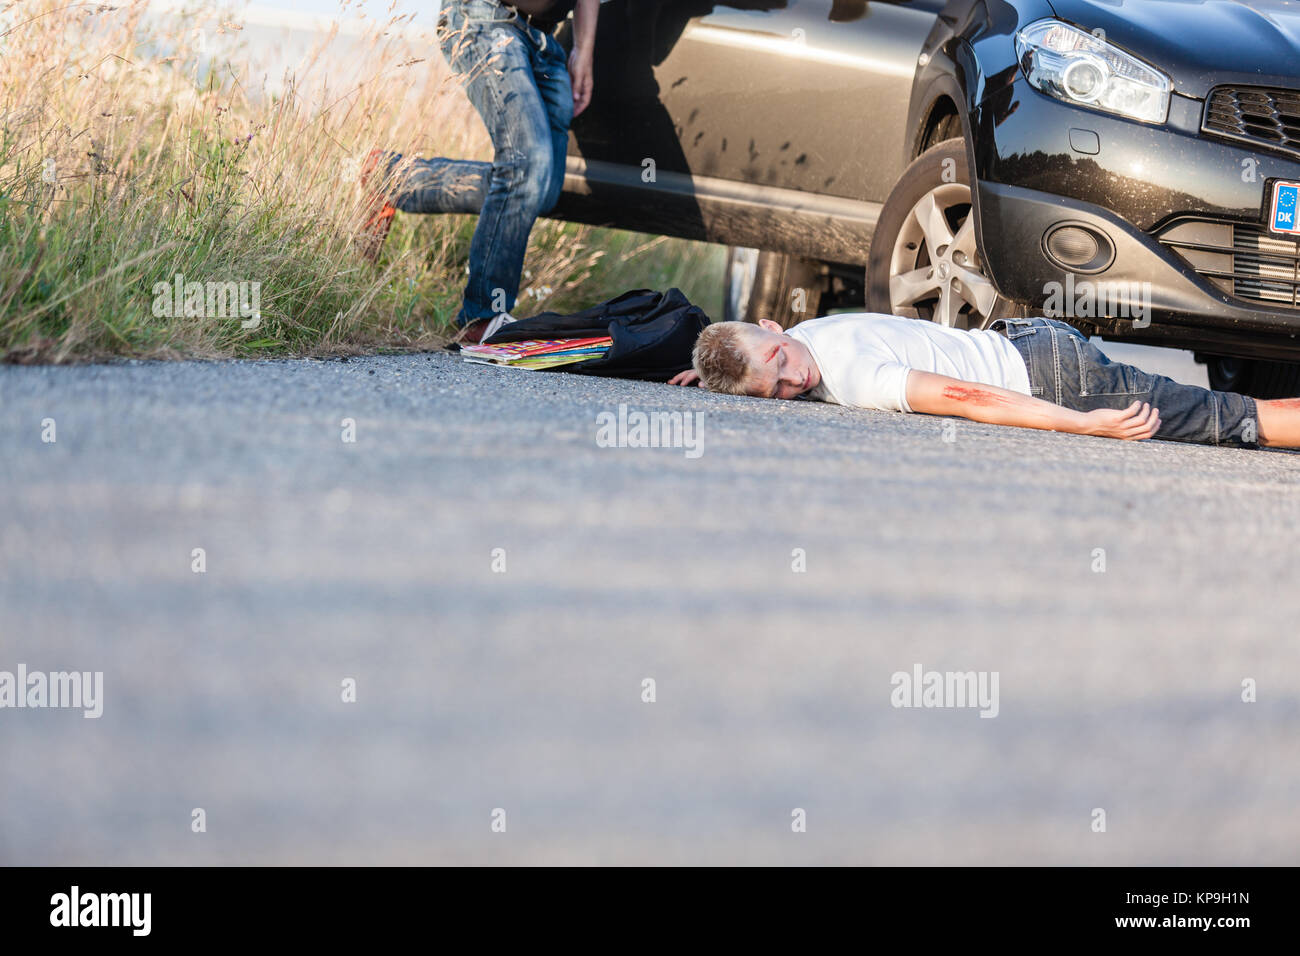 Road Traffic Injury Stock Photos & Road Traffic Injury Stock Images ...